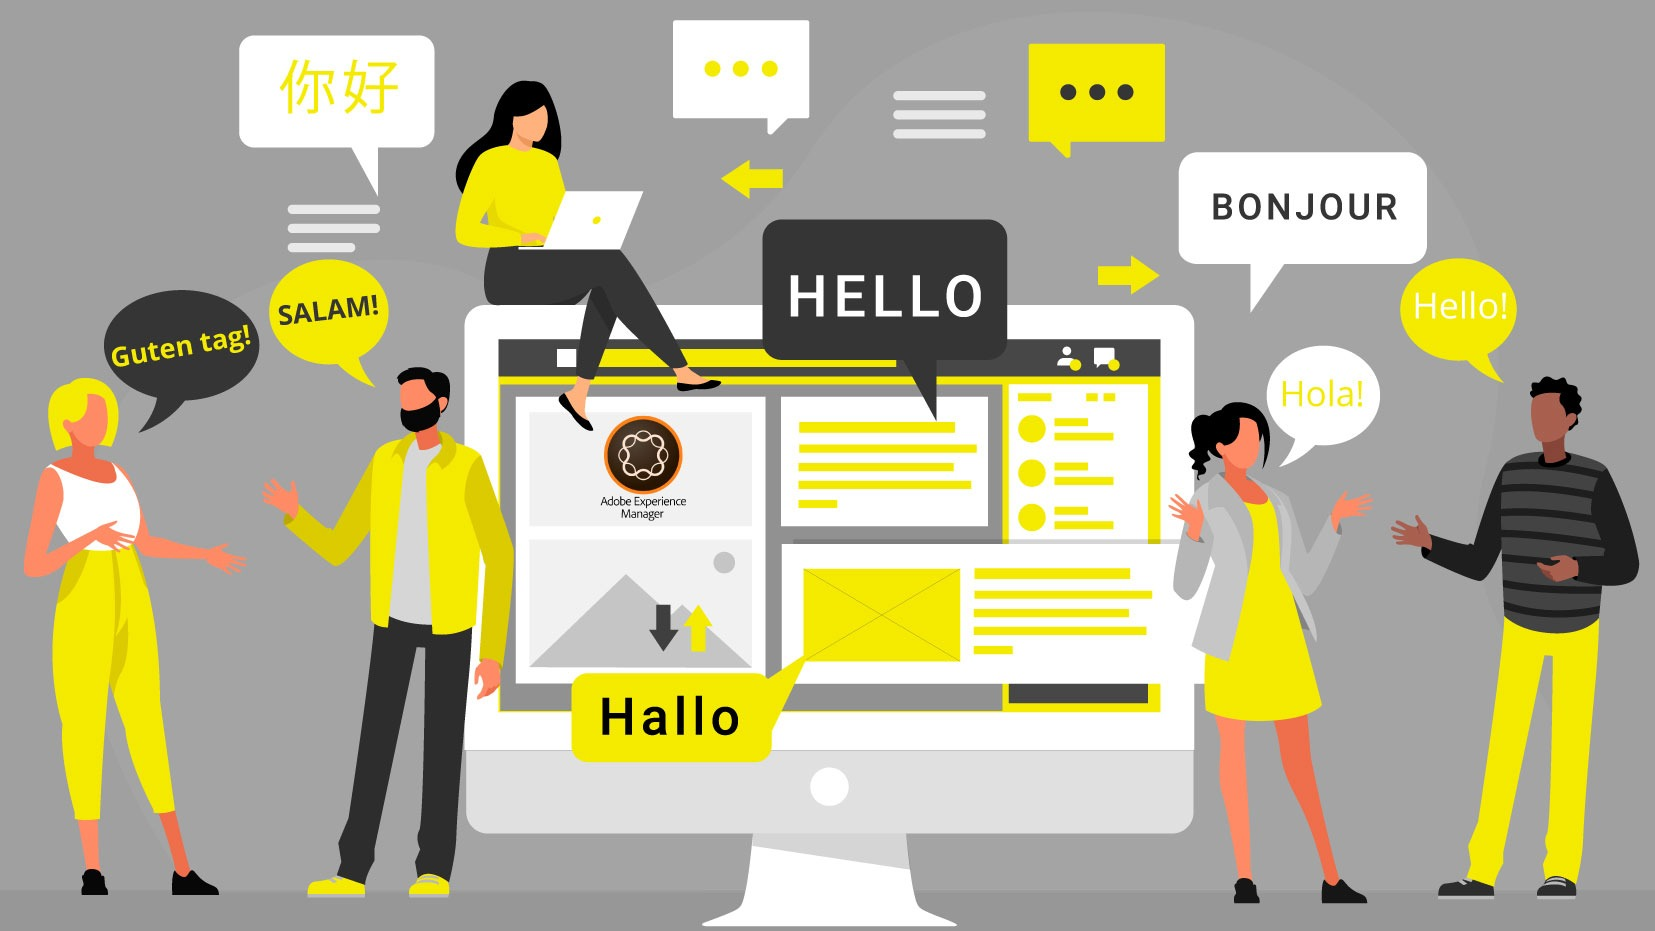 Crystal Clear Communication: Smartling and Adobe Experience Manager